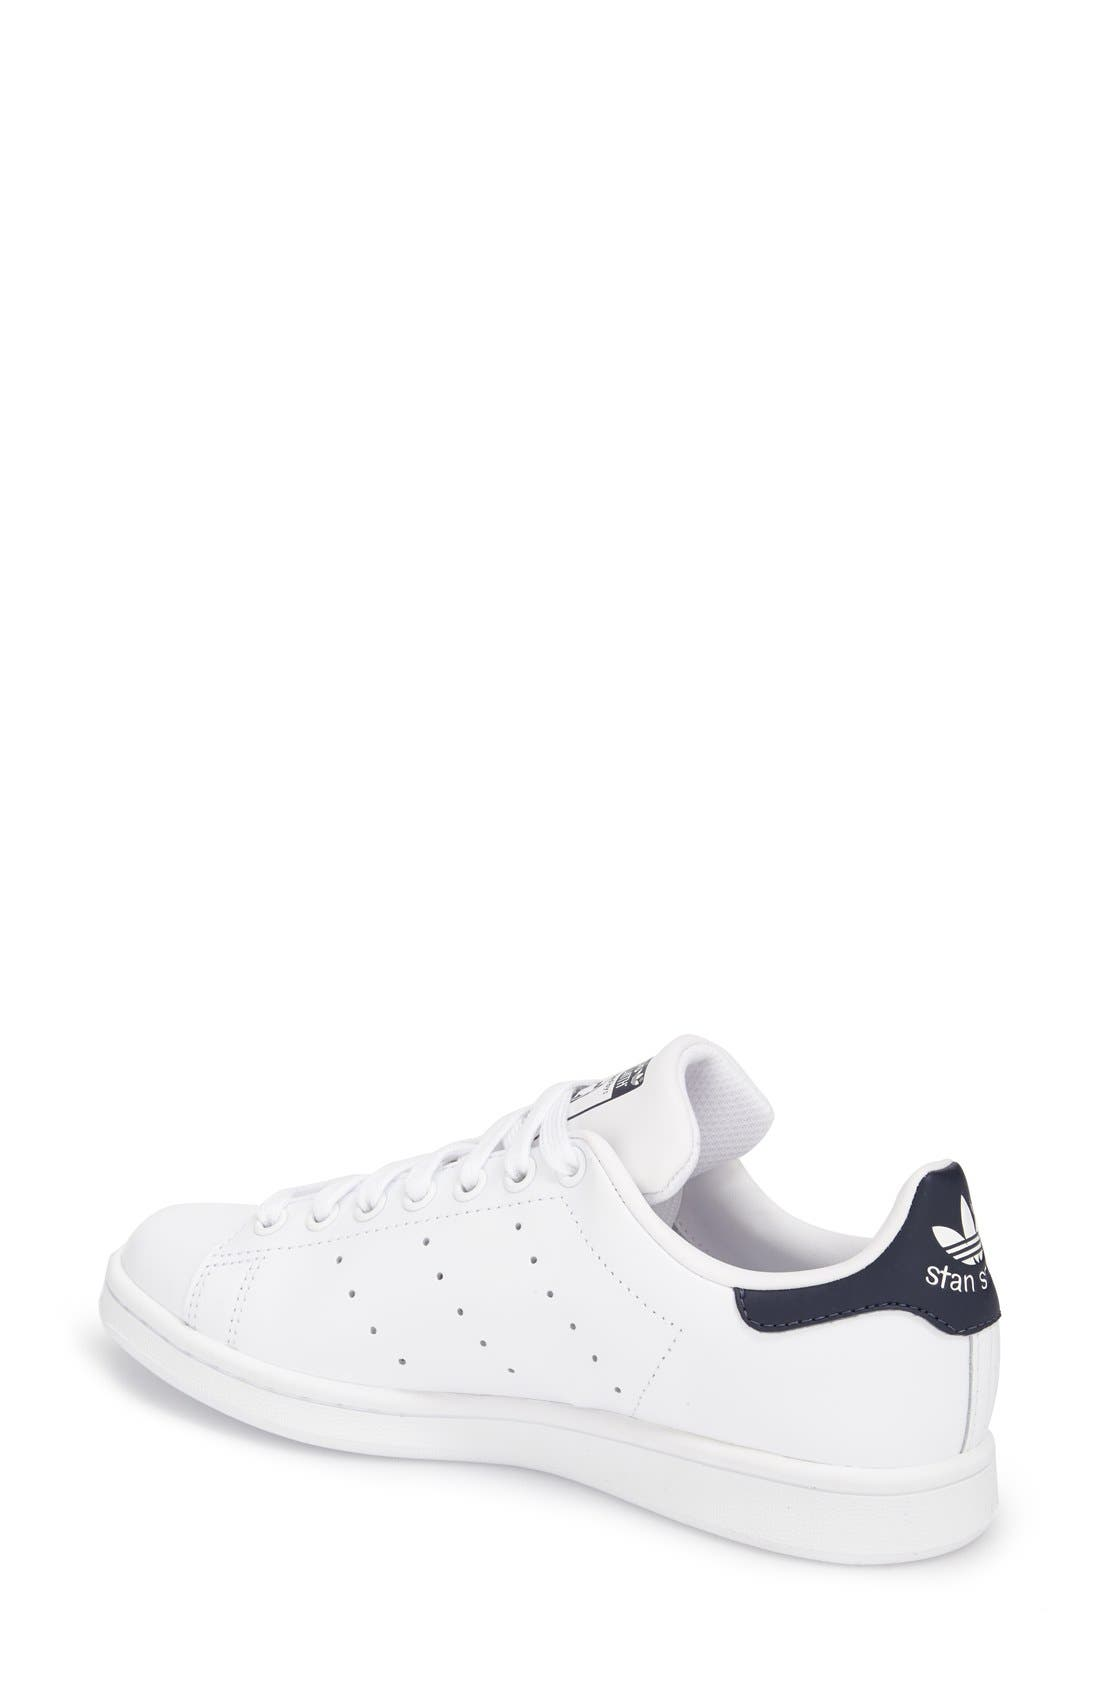 adidas running shoes for boys nordstrom adidas stan smith kids shoes